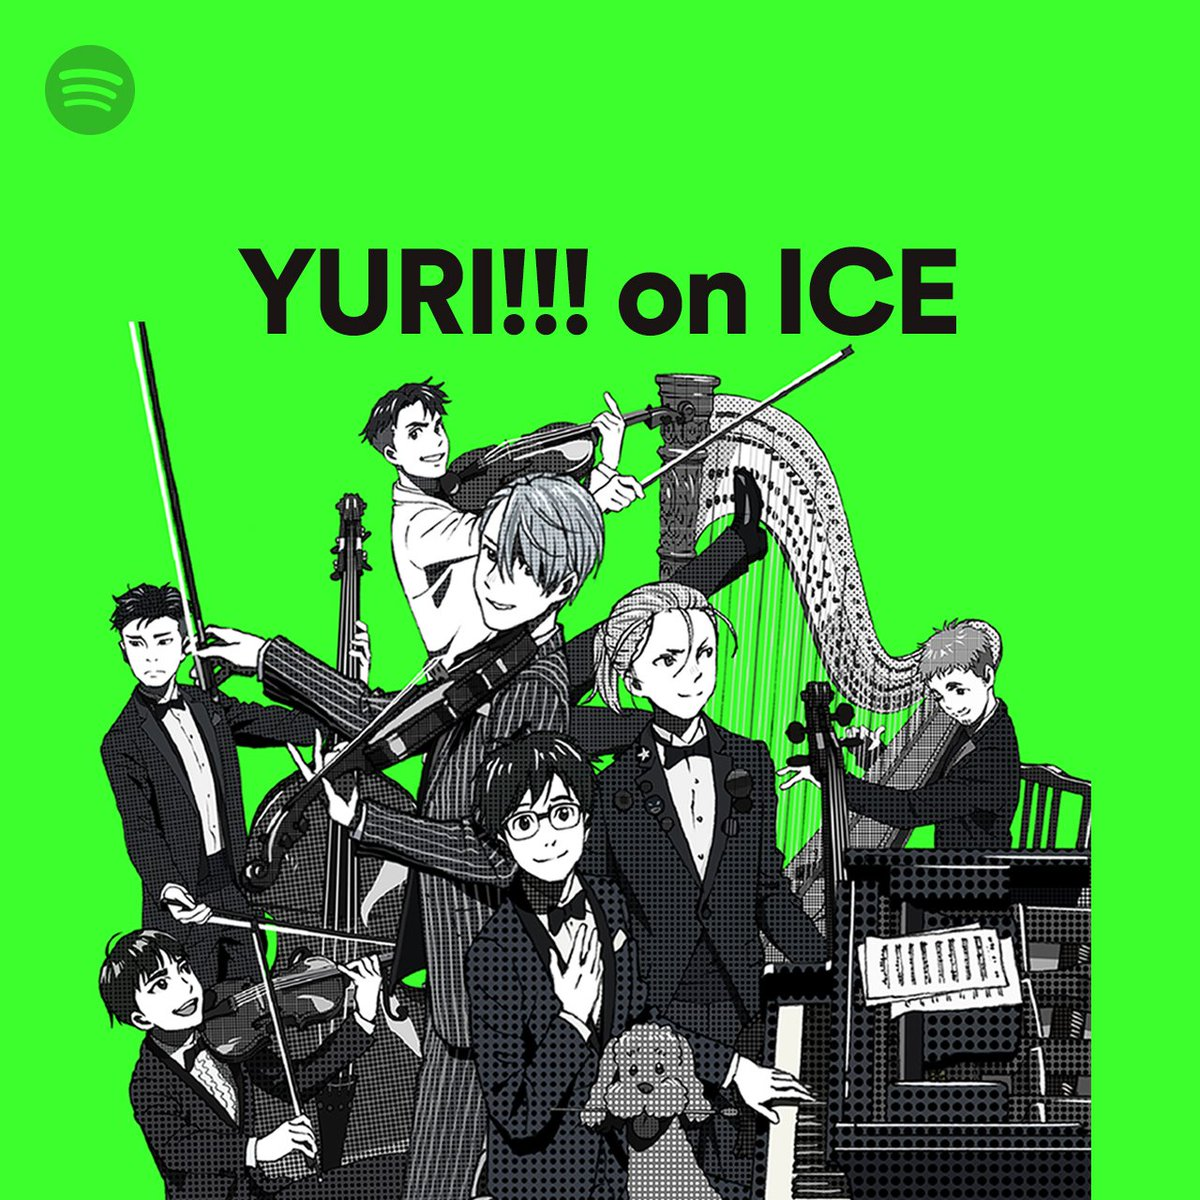 YURI!!! on Ice. And it's live!!! https://t.co/eSu8odsafs 🎶